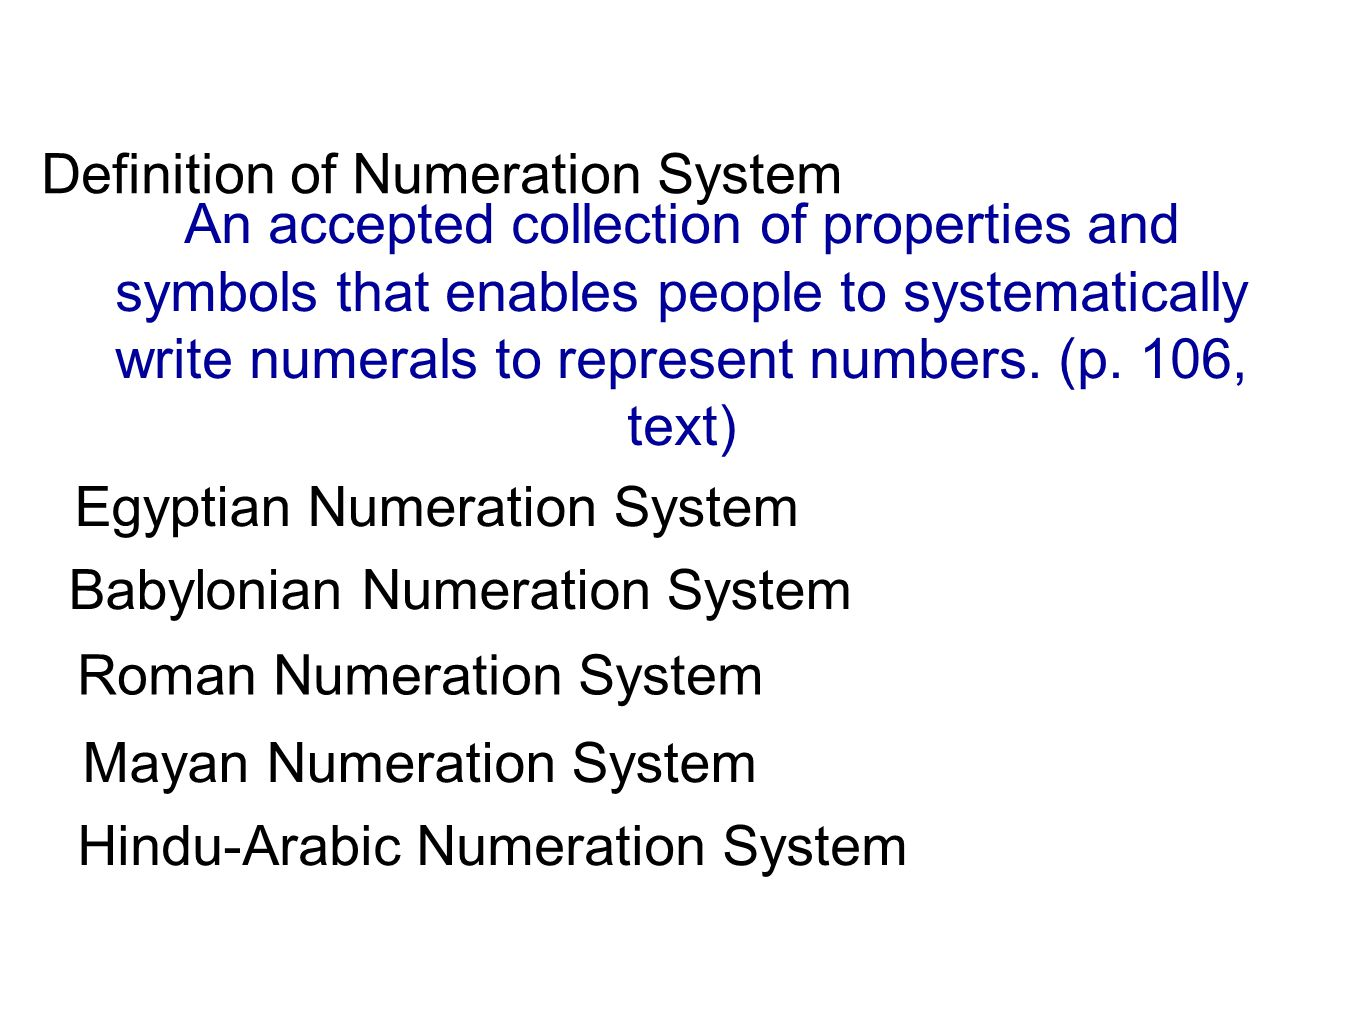 Babylonian Numeration System Developed between 3000 and 2000 B.C.E There are two symbols in the Babylonian Numeration System Base 60 Place value one ten 42(60 1 ) + 34(60 0 ) = 2520 + 34 = 2,554 Zero came later Write the Hindu-Arabic numerals for the numbers represented by the following numerals from the Babylonian system: